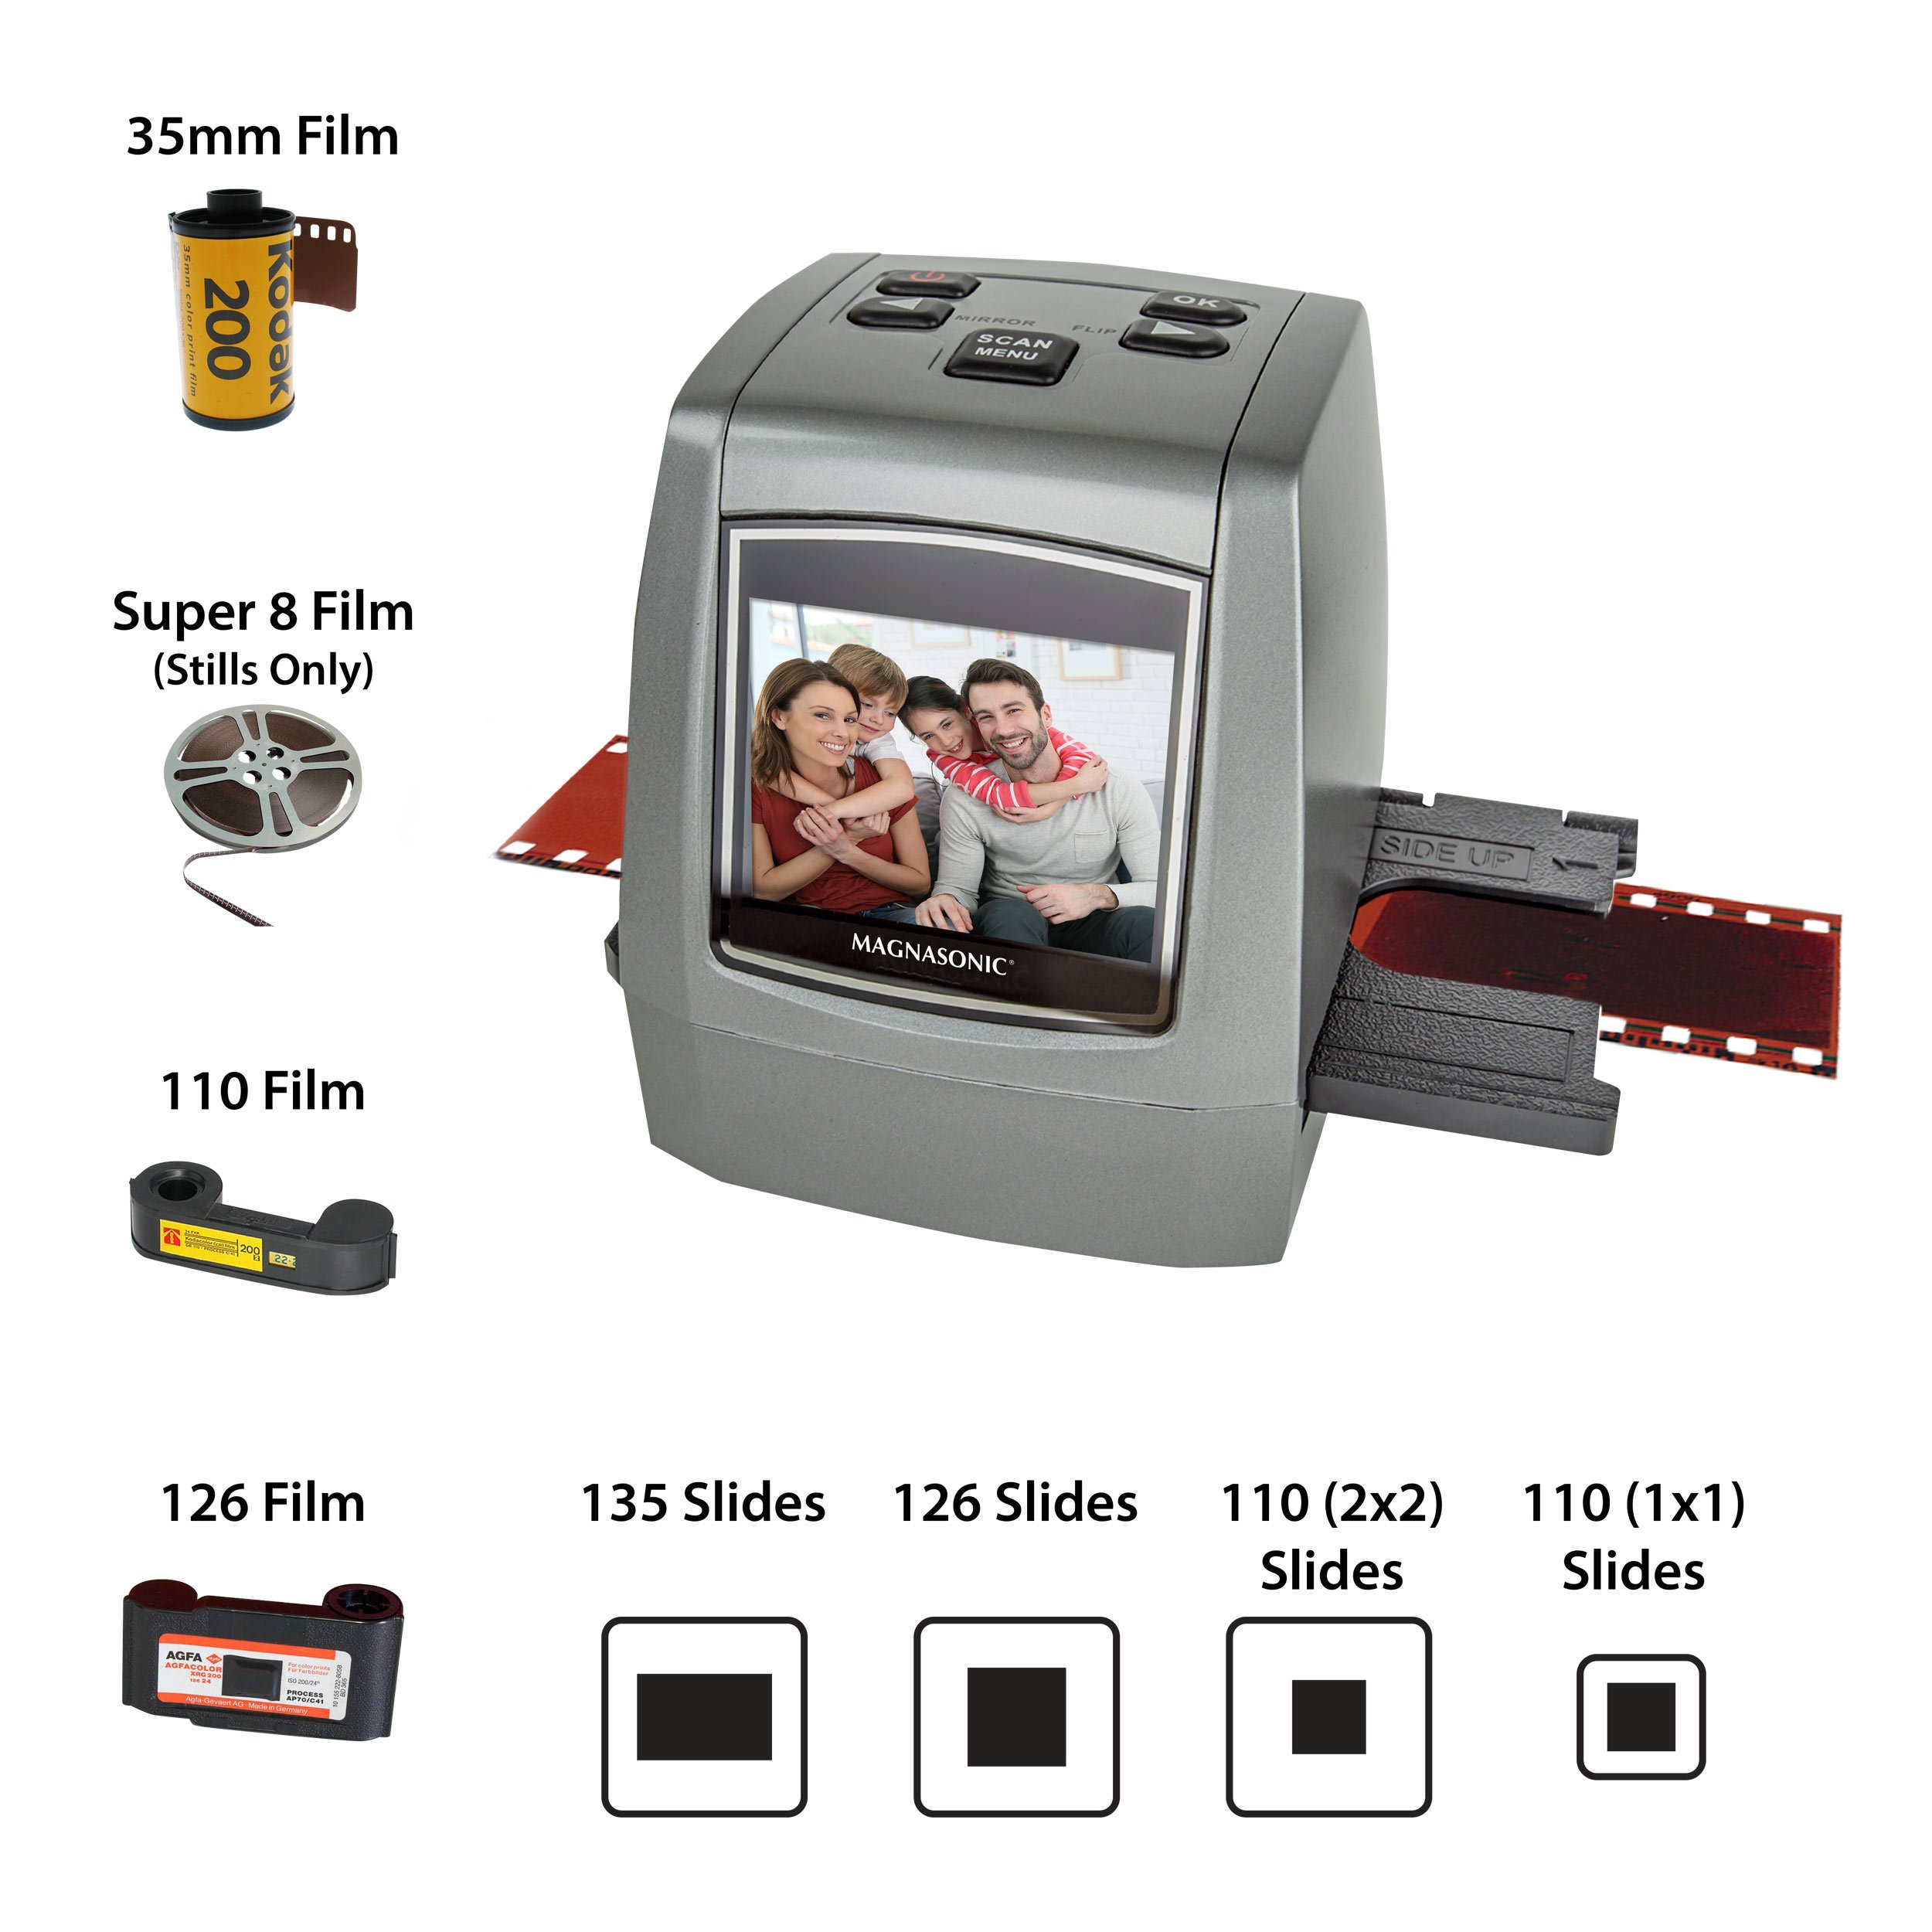 Magnasonic All-in-One High Resolution 22MP Film Scanner, Converts 126KPK/135/110/Super 8 Films, Slides, Negatives into Digital Photos, Vibrant 2.4'' LCD Screen, Impressive 128MB Built-in Memory